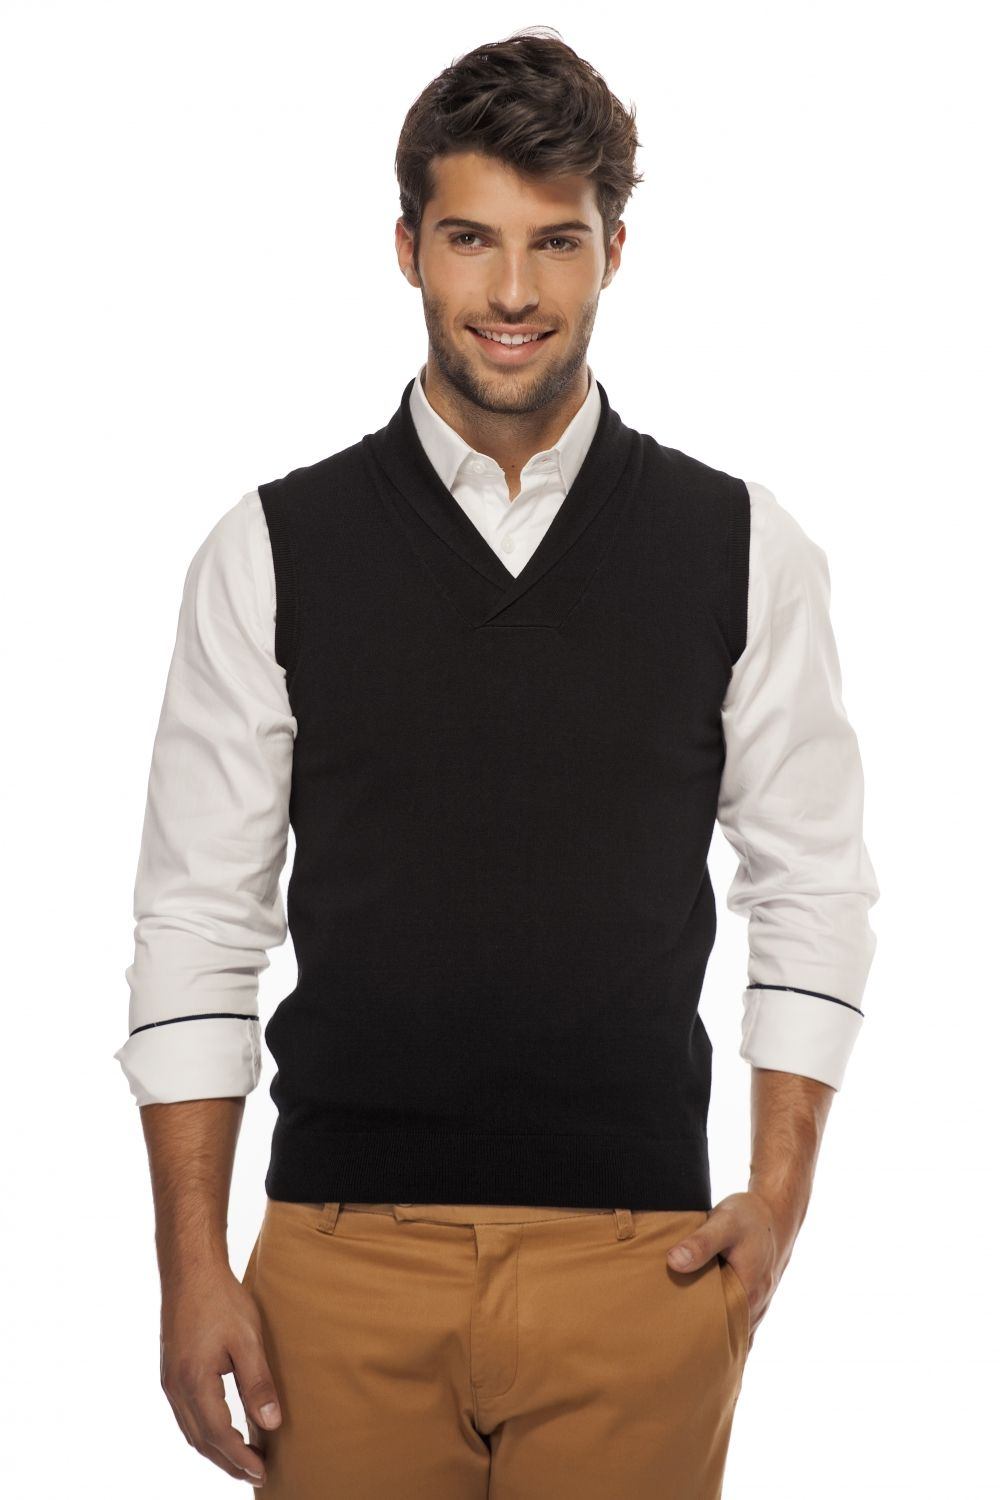 Find great deals on eBay for mens sleeveless sweater. Shop with confidence.